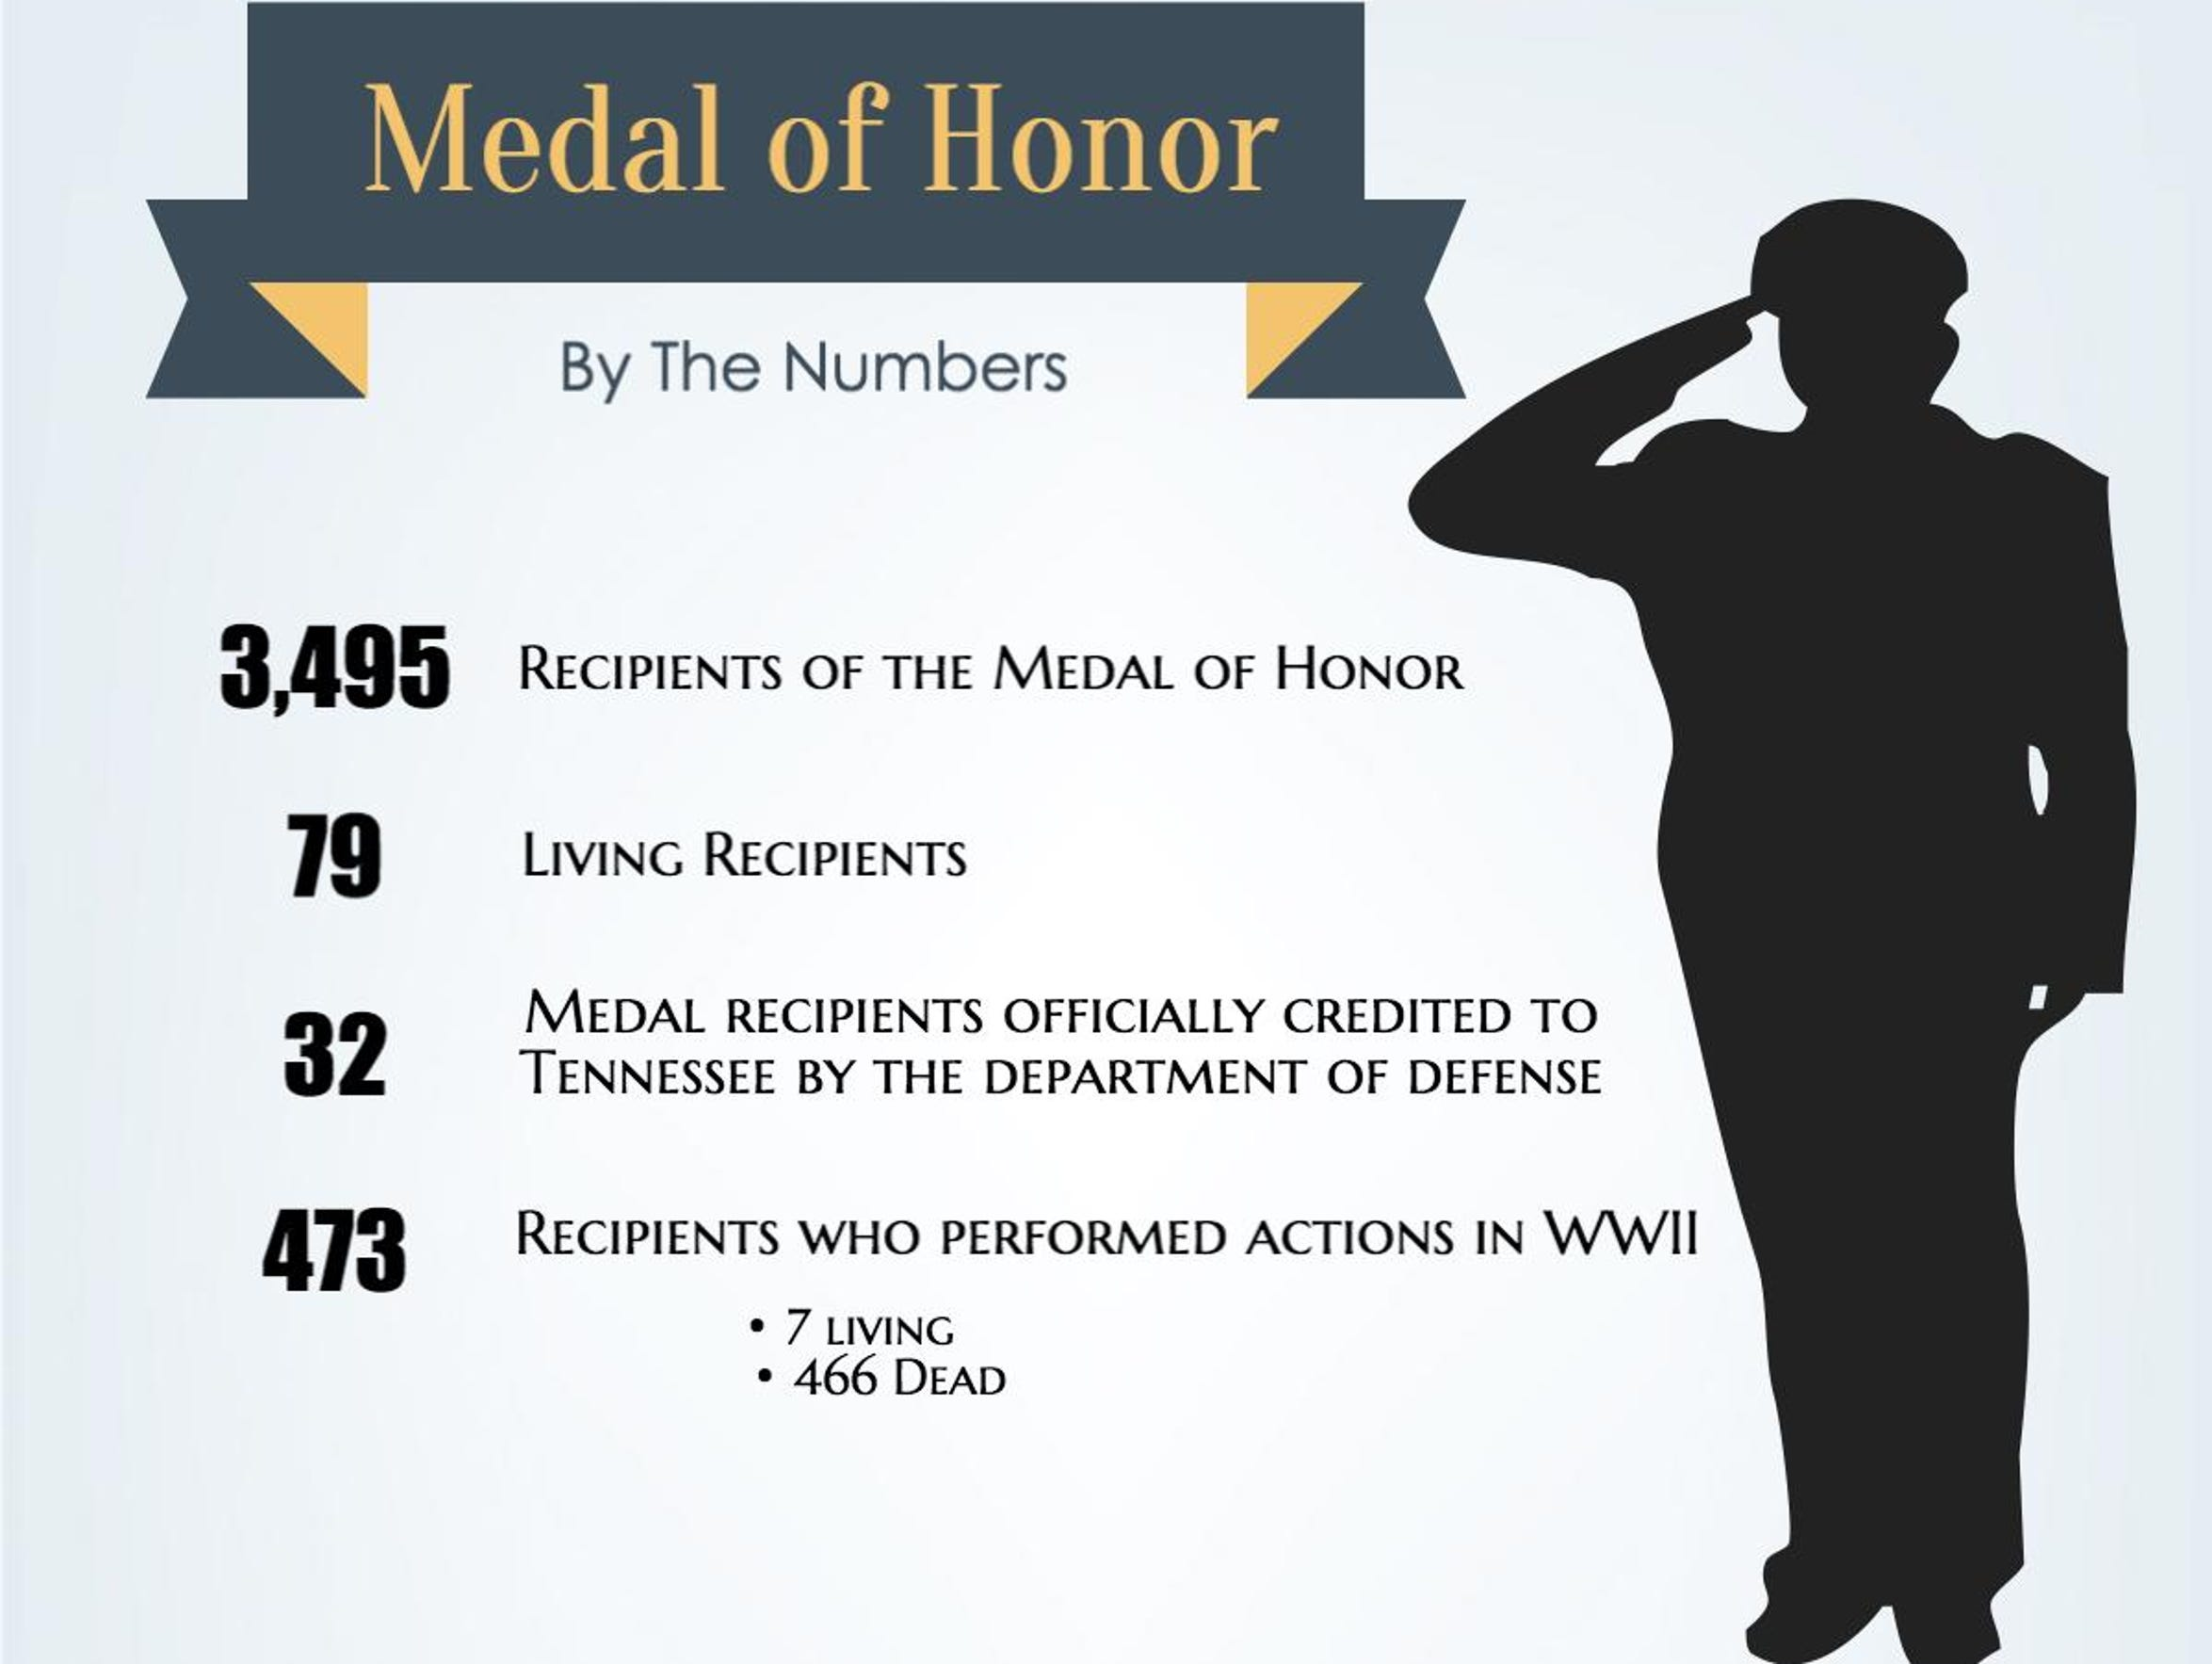 Medal of Honor by the numbers